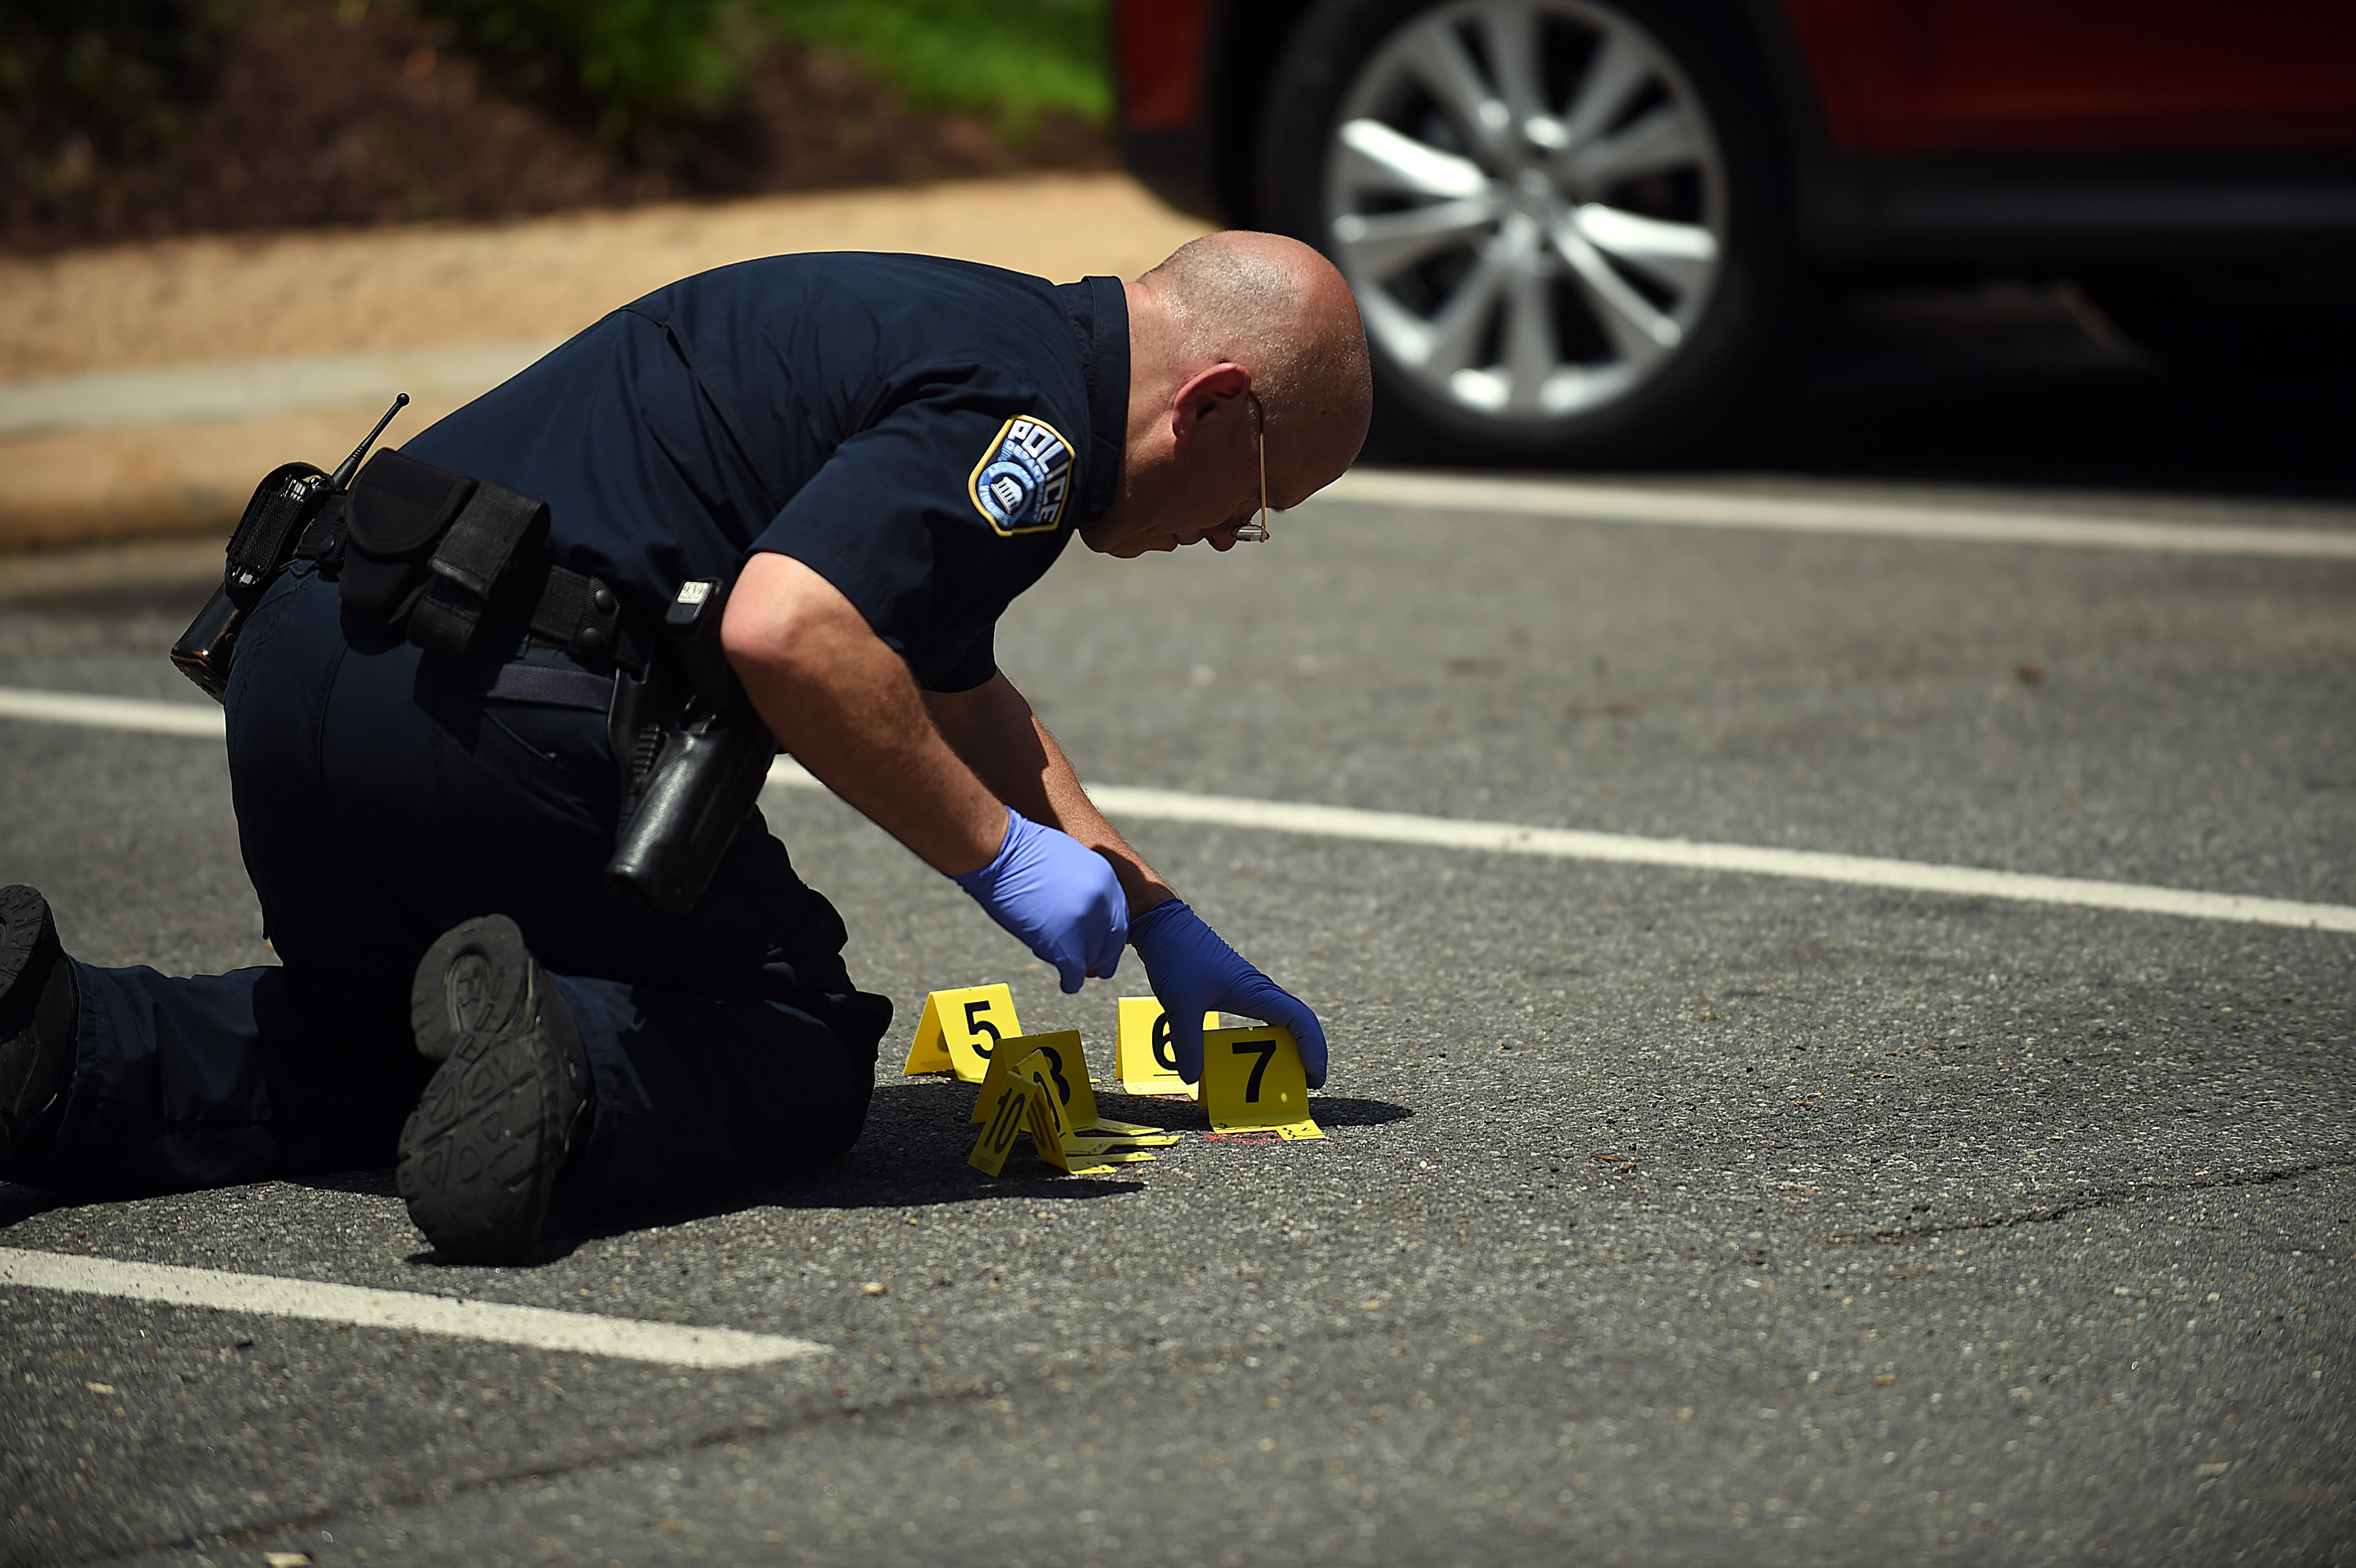 ARLINGTON, VA - May 18: Crime scene marker are placed near an a